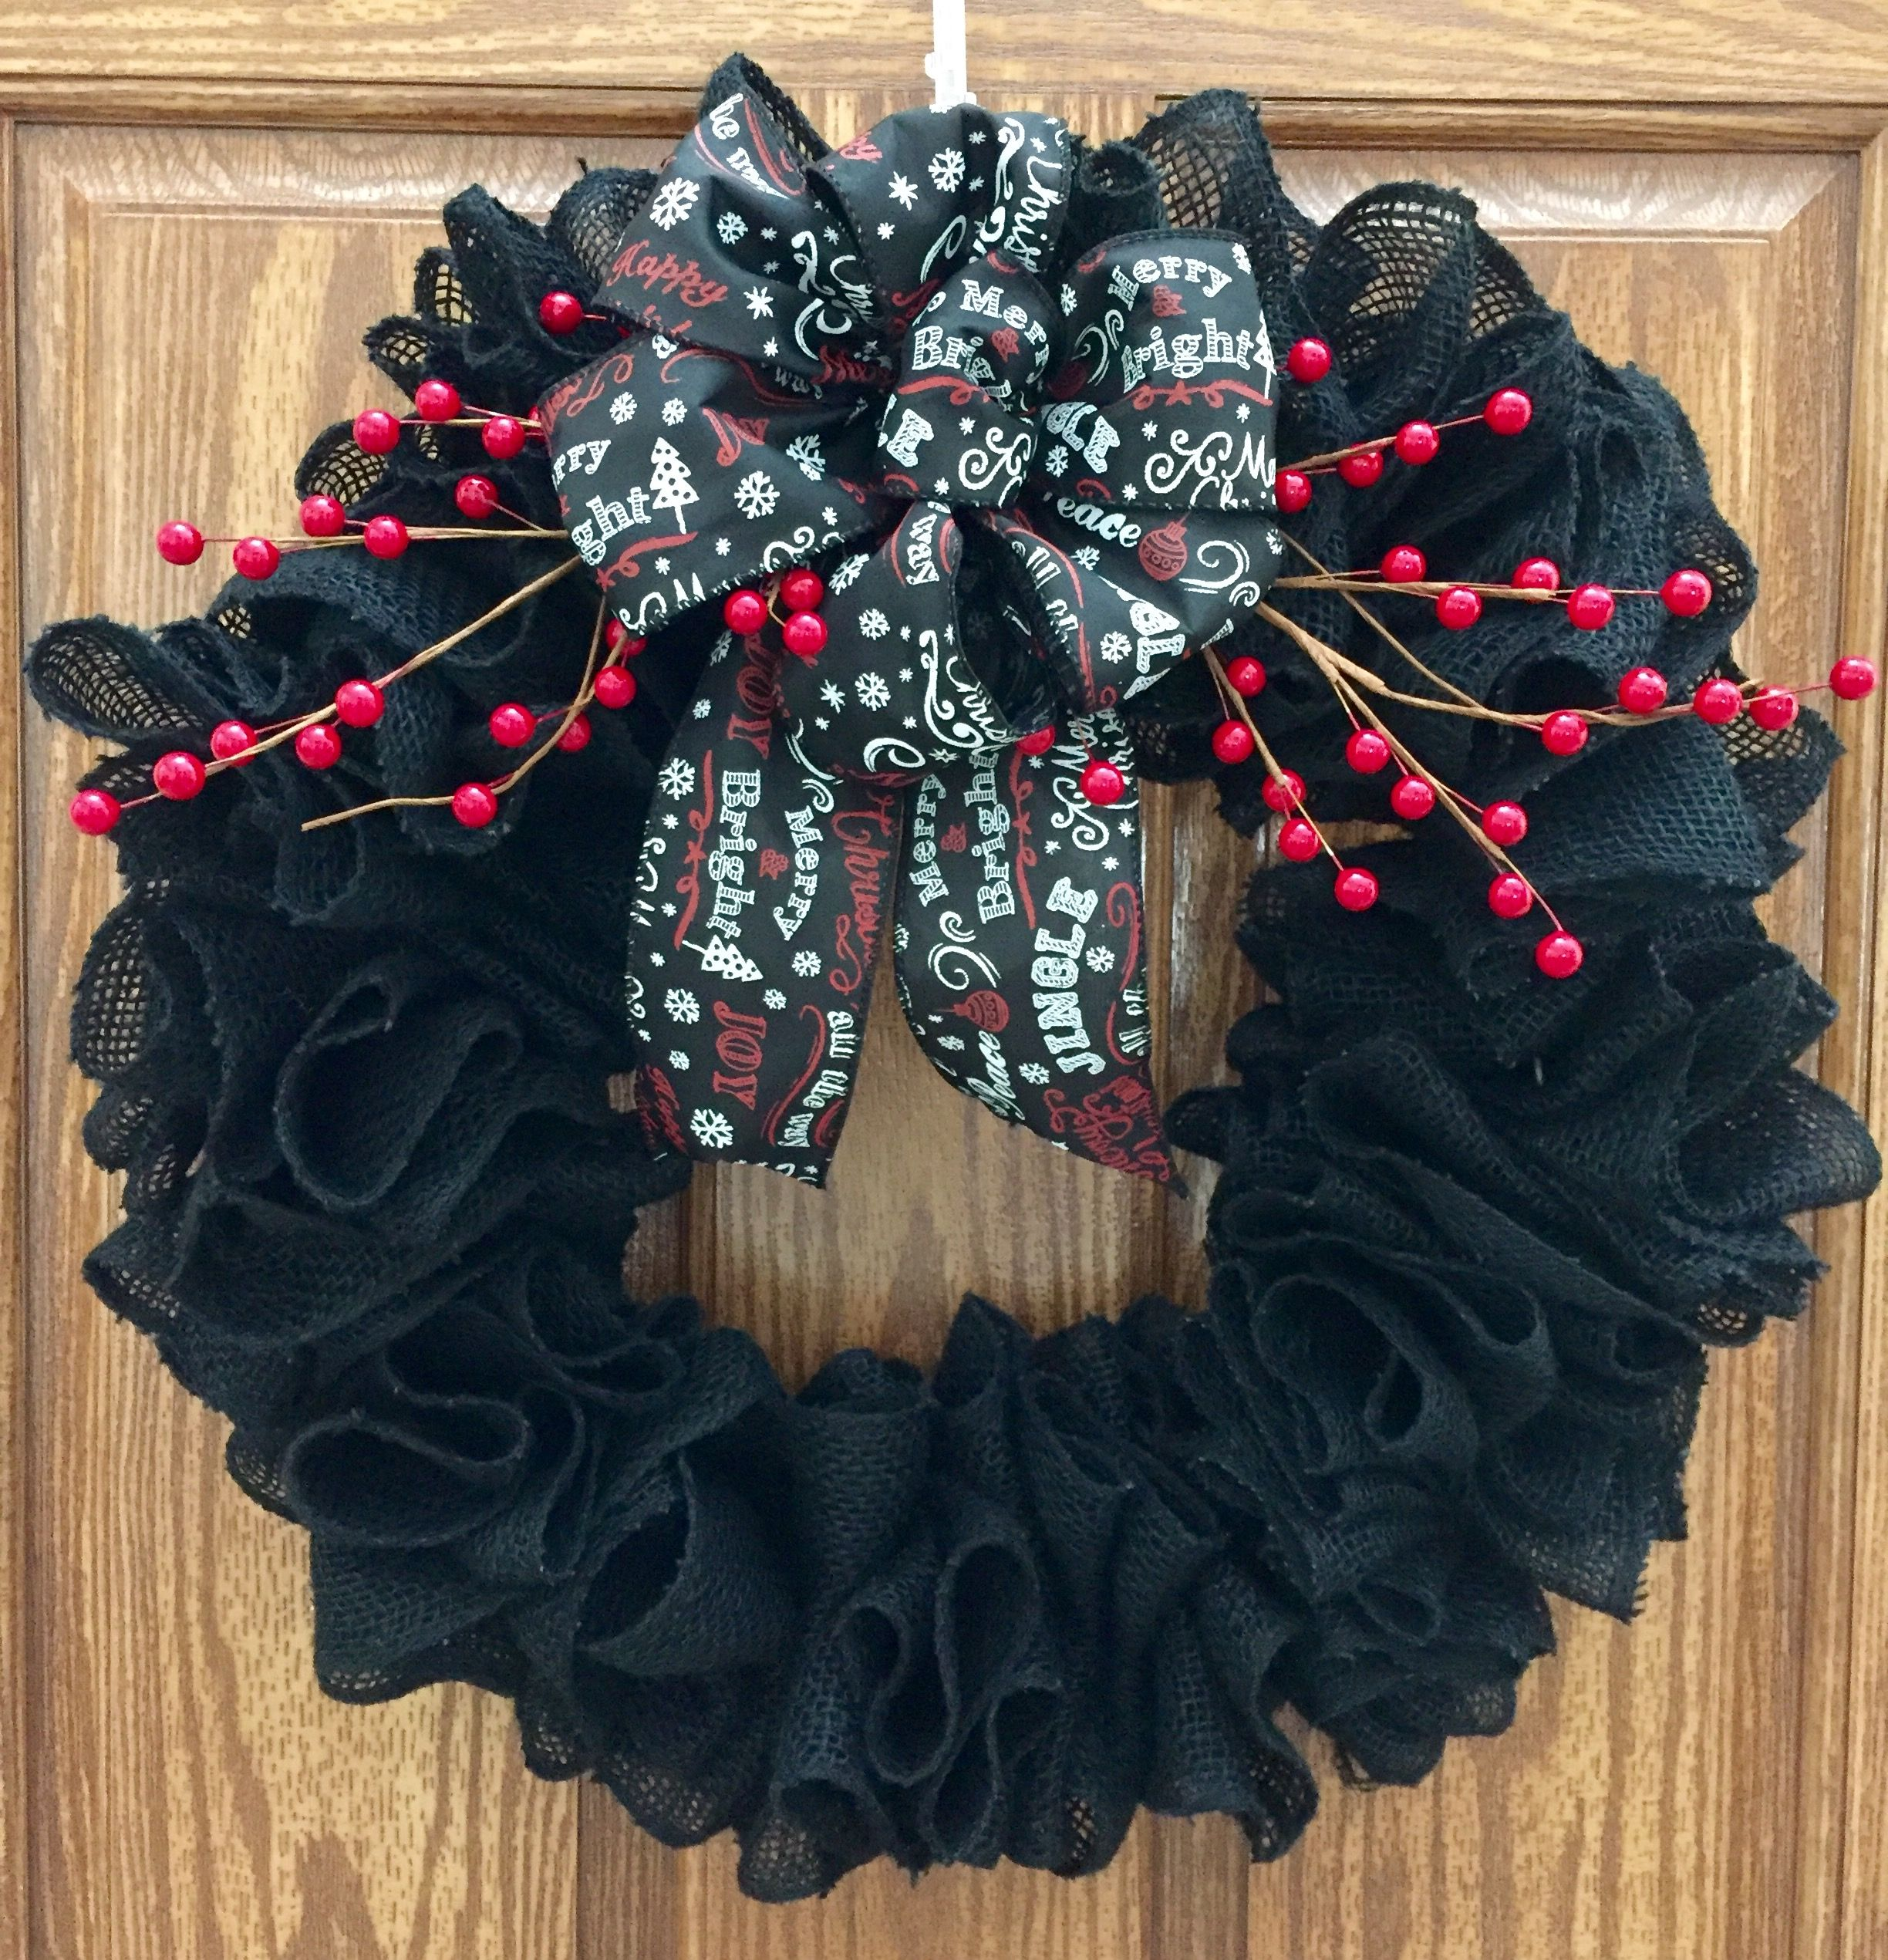 I made this beautiful black burlap Christmas Wreath. If you are interested let me know.